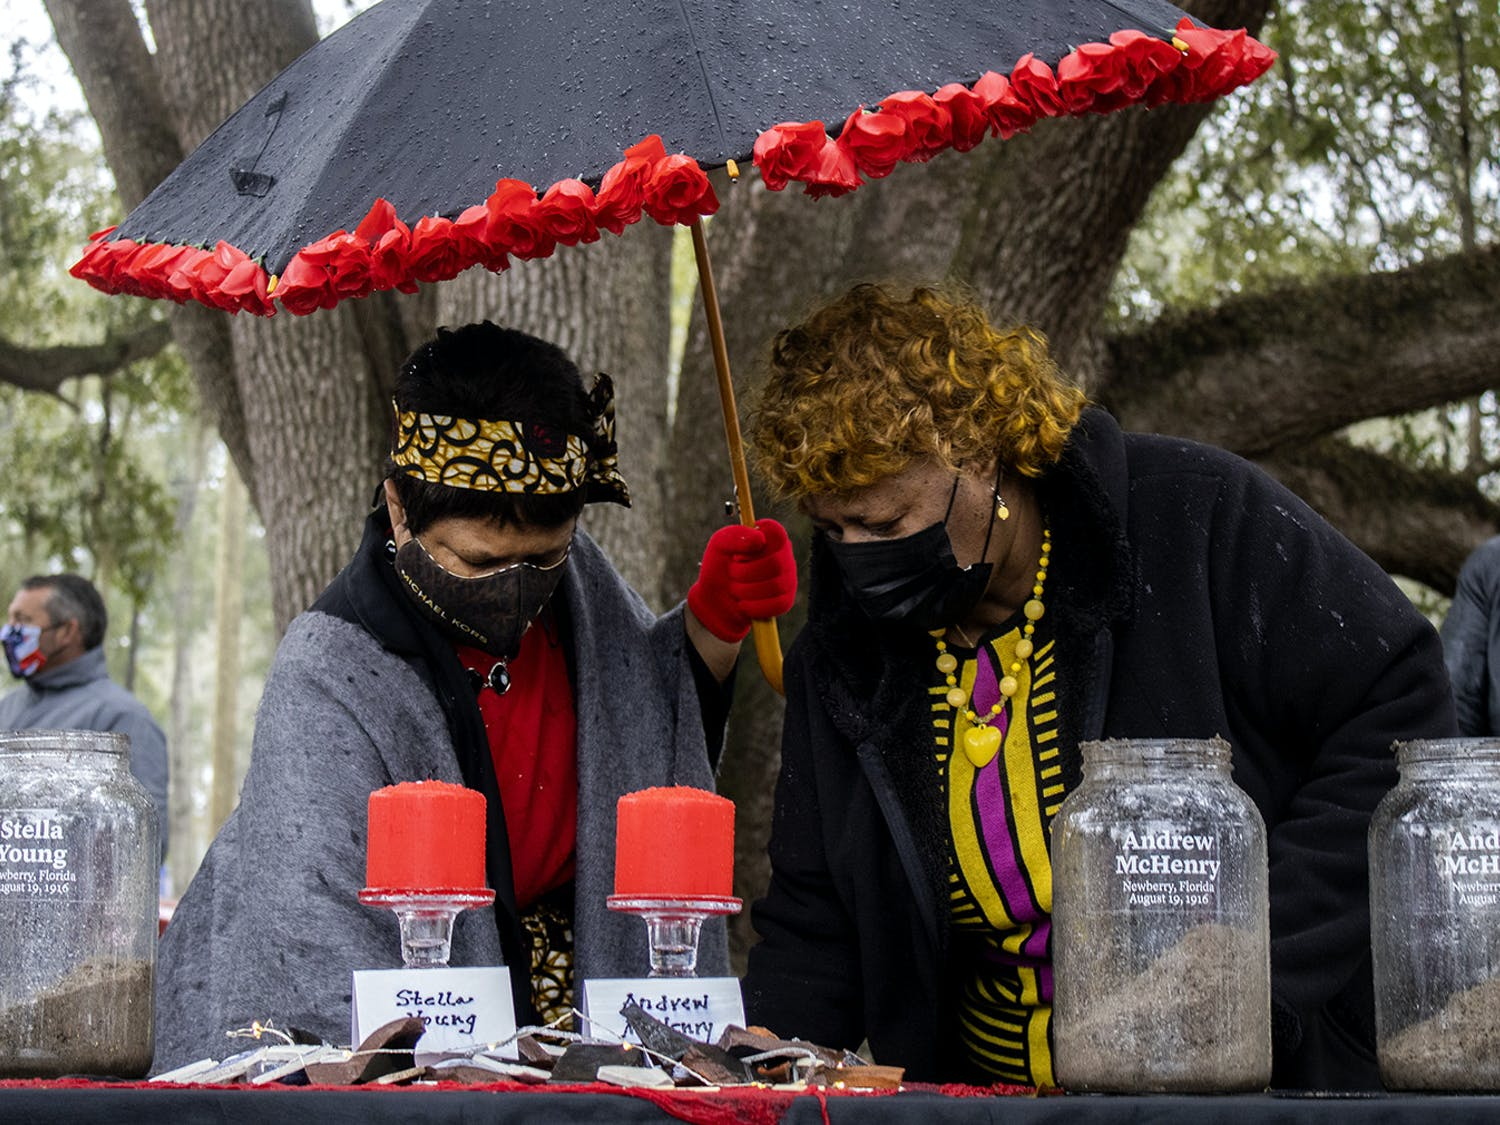 Gail K. Watson (left) and Brenda Whitfield (right) scoop dirt into glass jars at the soil ceremony for the Newberry Six on Friday, Feb. 5, 2021. Whitfield spoke during the ceremony before the crowd began adding earth to the containers.